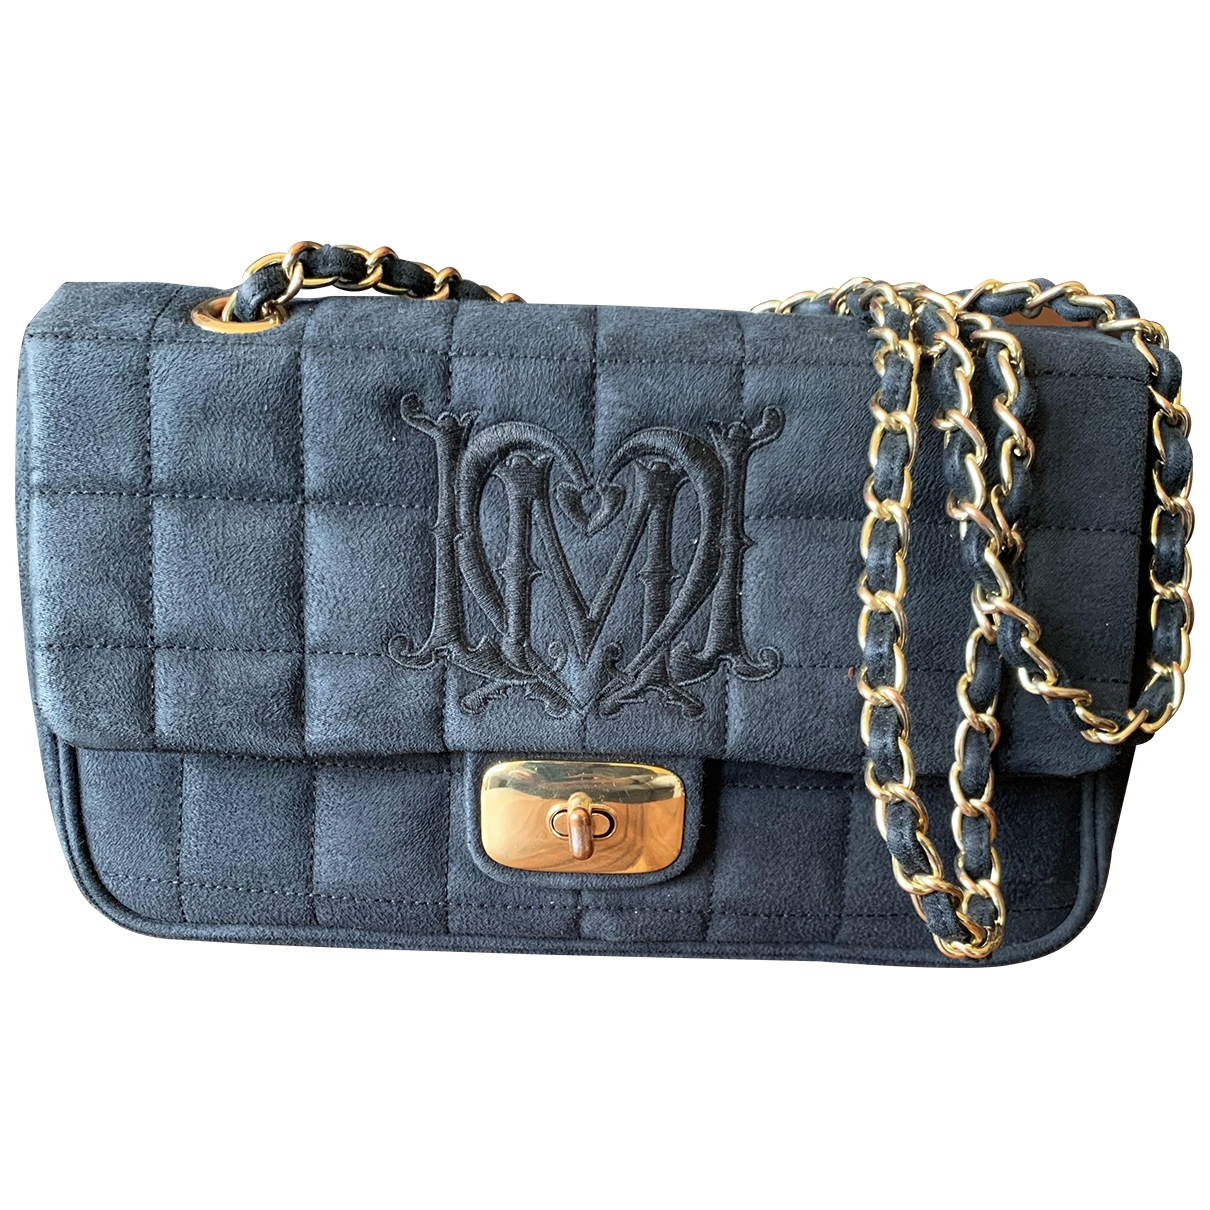 Moschino Love \N Black handbag for Women \N